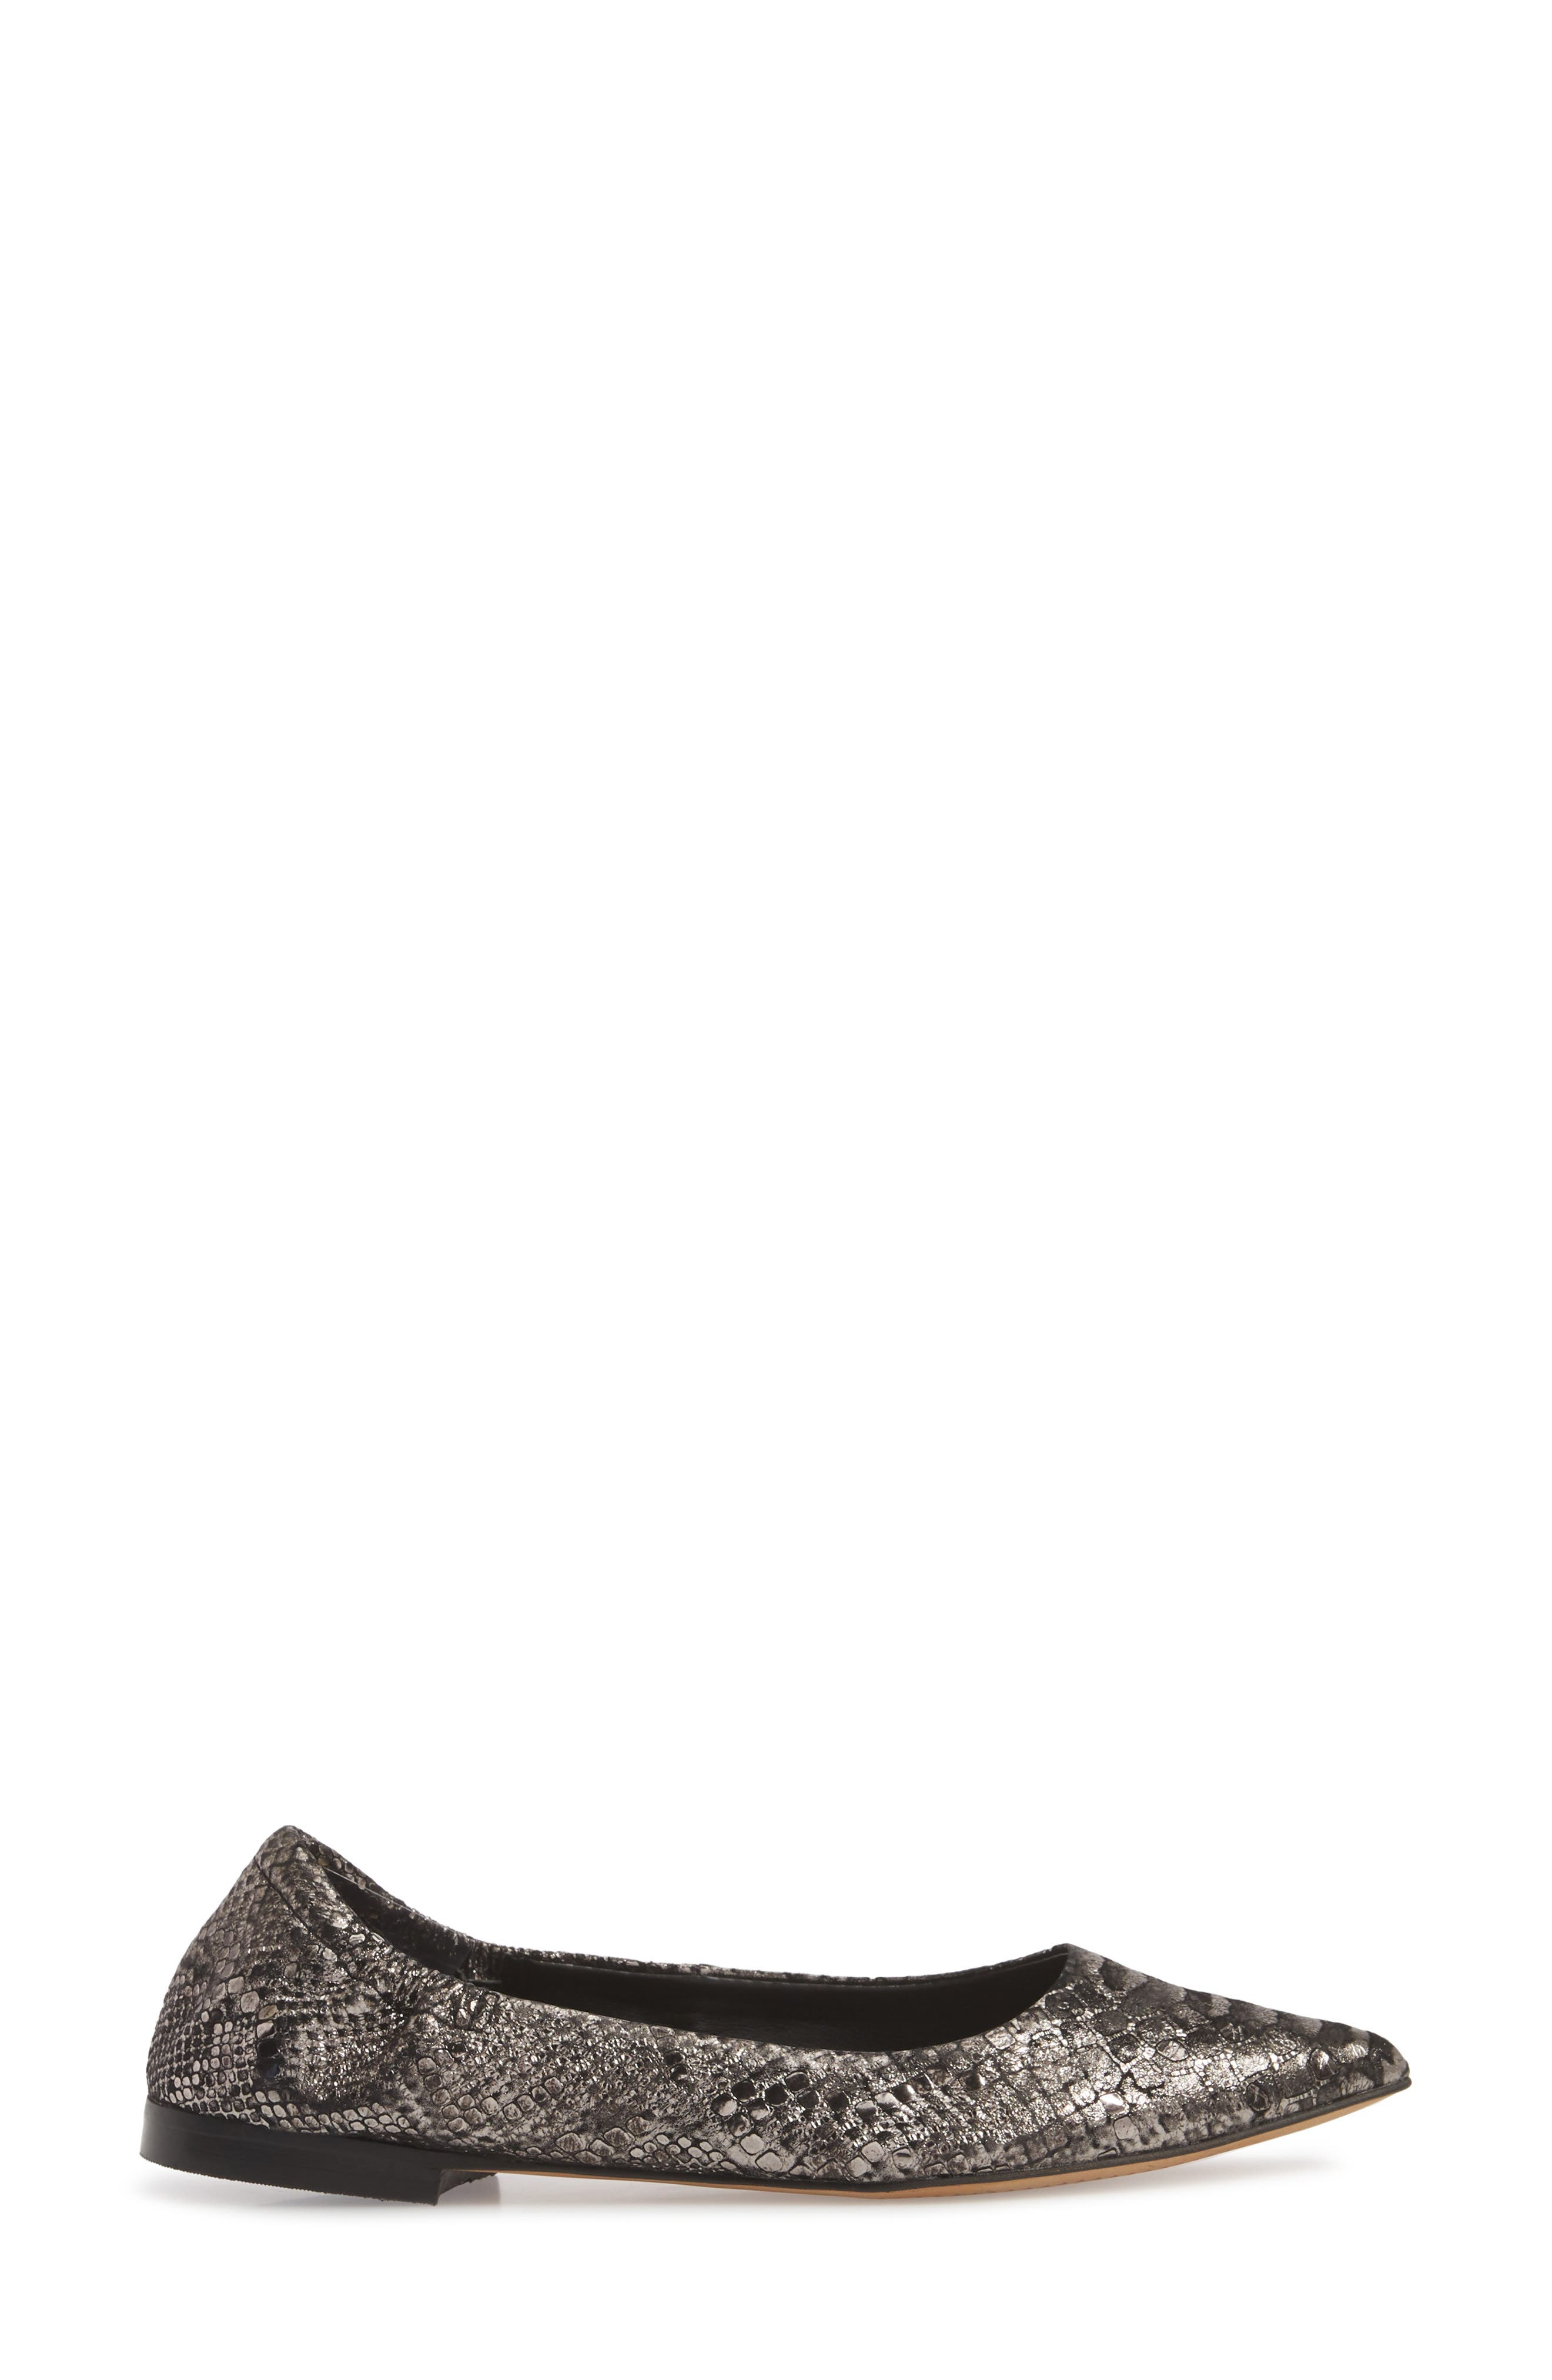 Isola Padra Pointy Toe Flat,                             Alternate thumbnail 3, color,                             PEWTER LEATHER